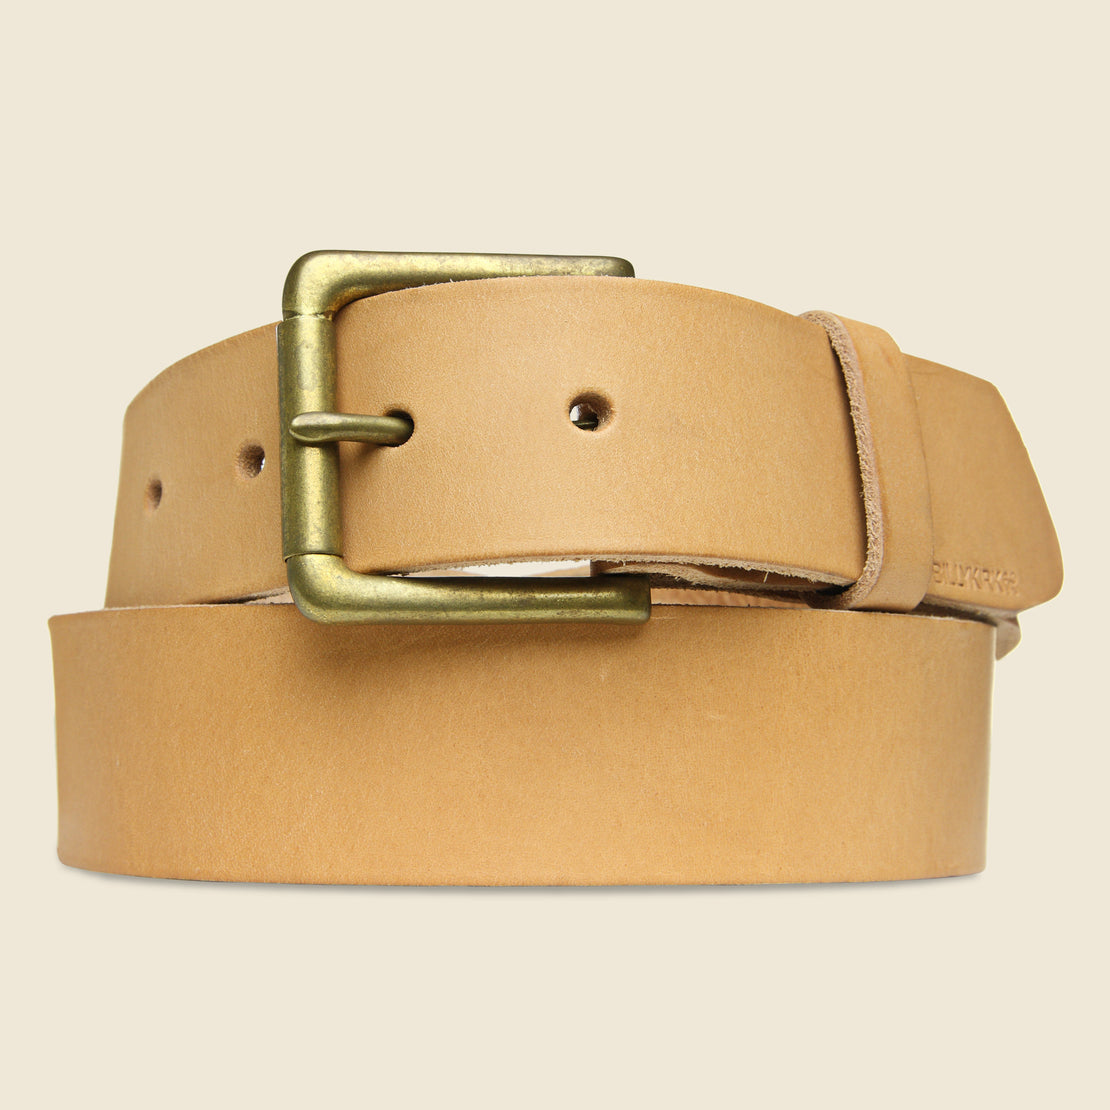 BILLYKIRK Roller Bar Belt - Natural